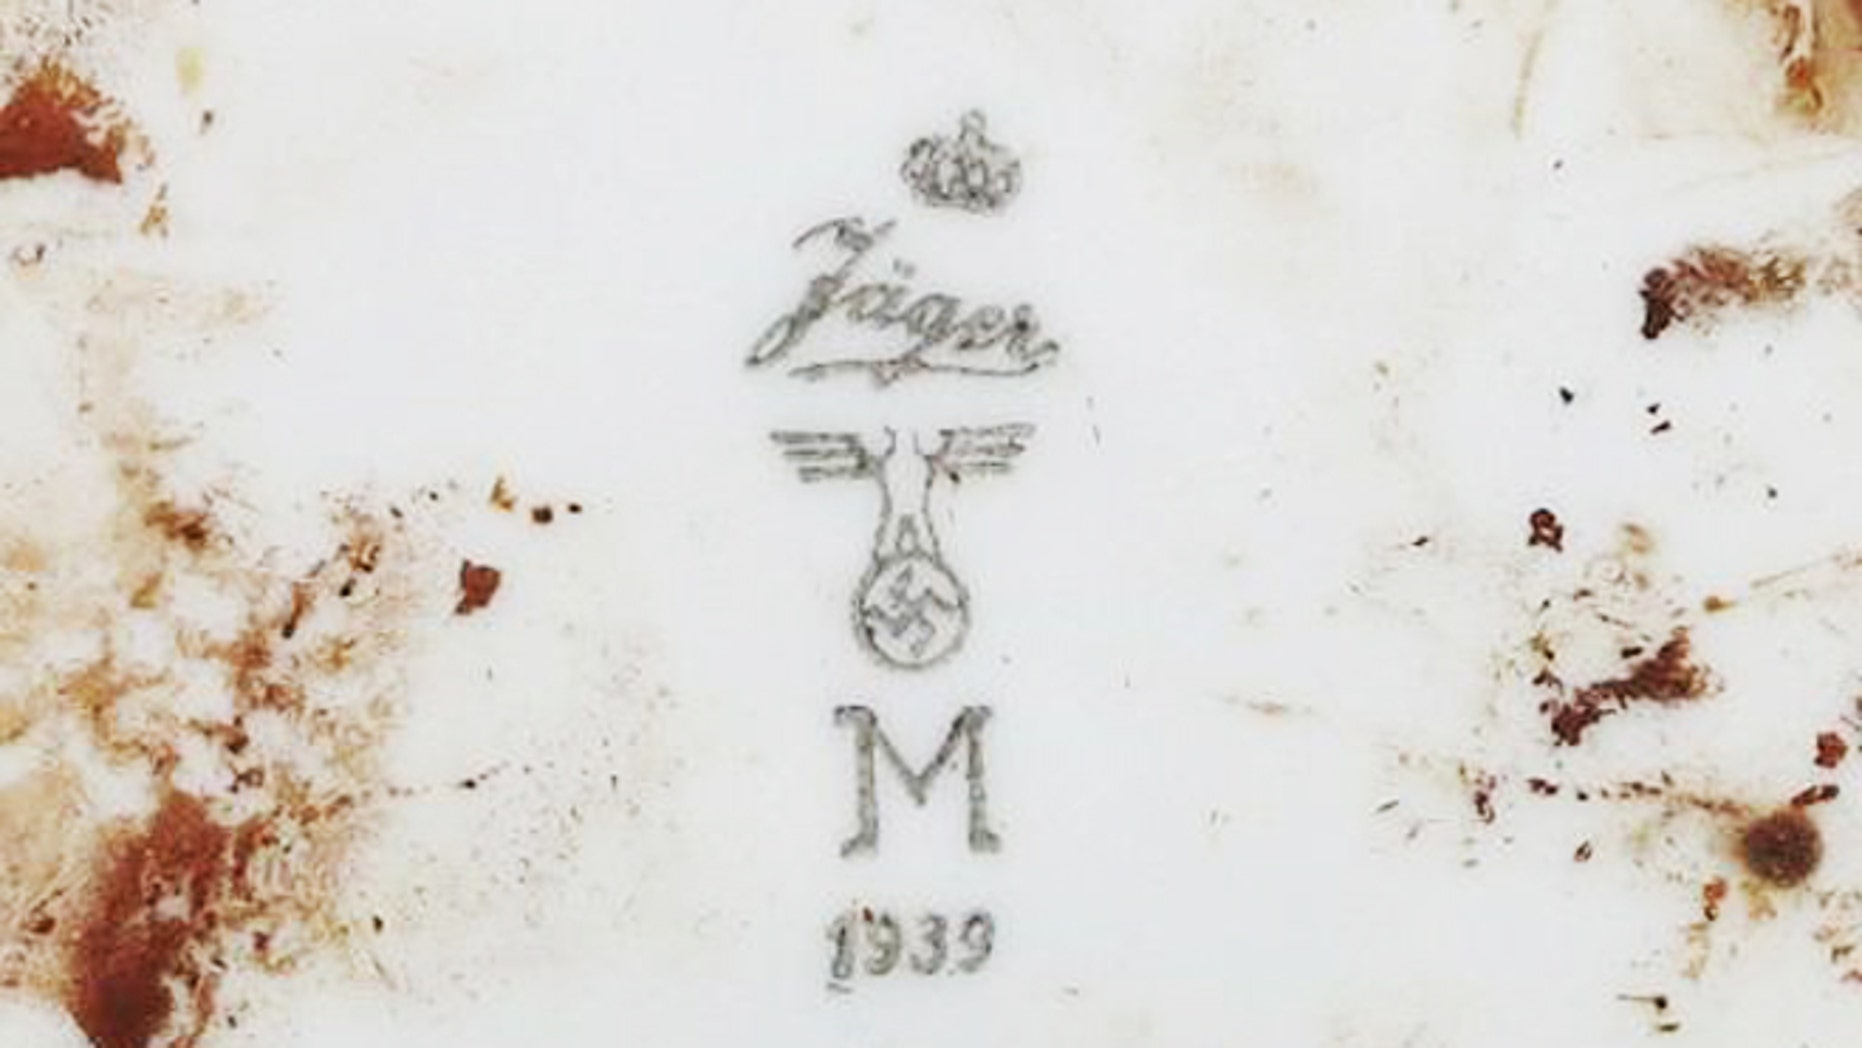 Nov. 21, 2013: Markings on a plate found by Indonesian archaeologists at the site of a sunken German submarine from the World War II era.